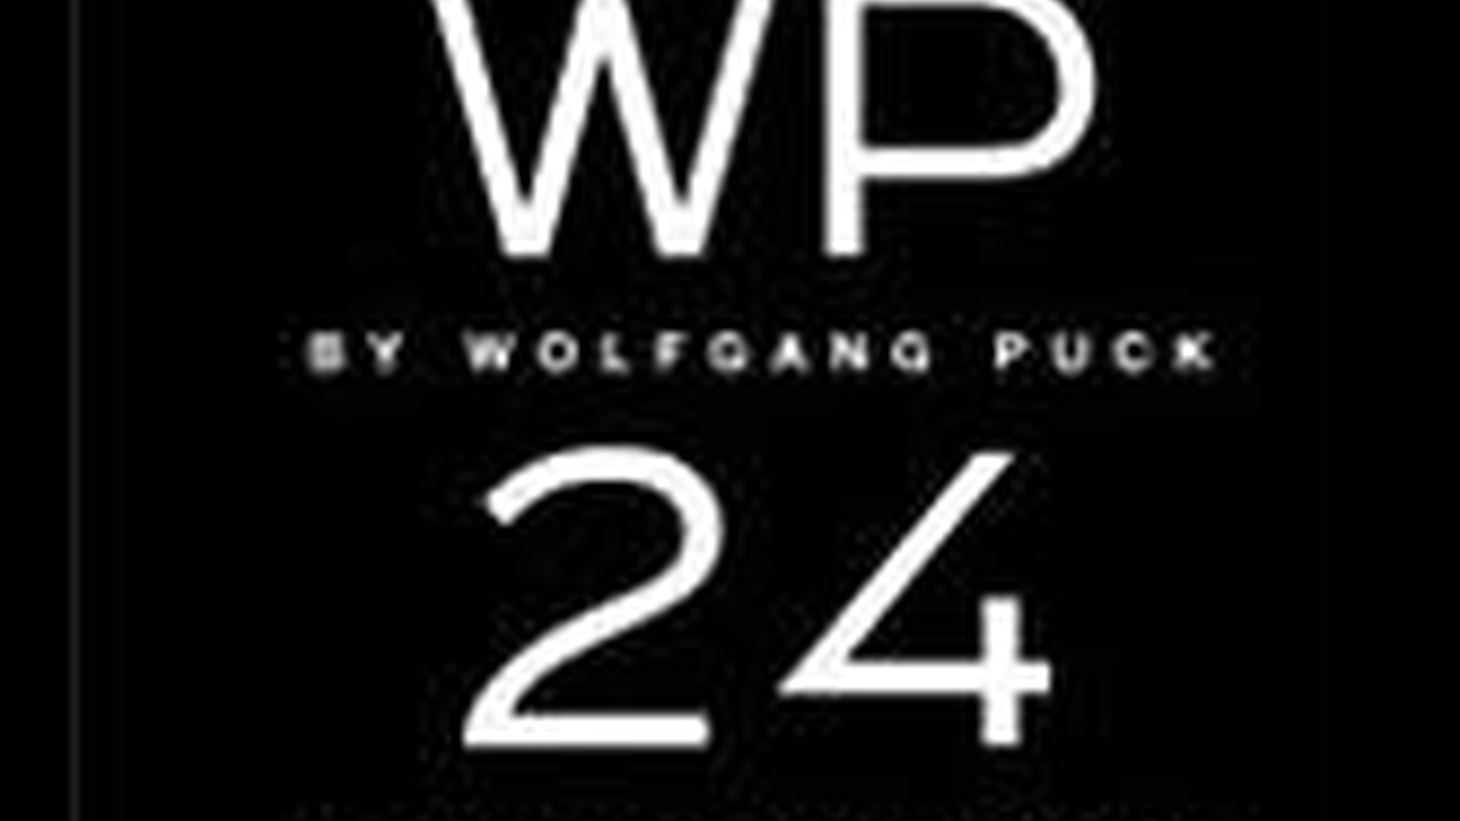 Jonathan Gold discusses Wolfgang Puck's high-end Chinese restaurant, WP24. Jonathan declares that you can't get a bad dish at this restaurant...